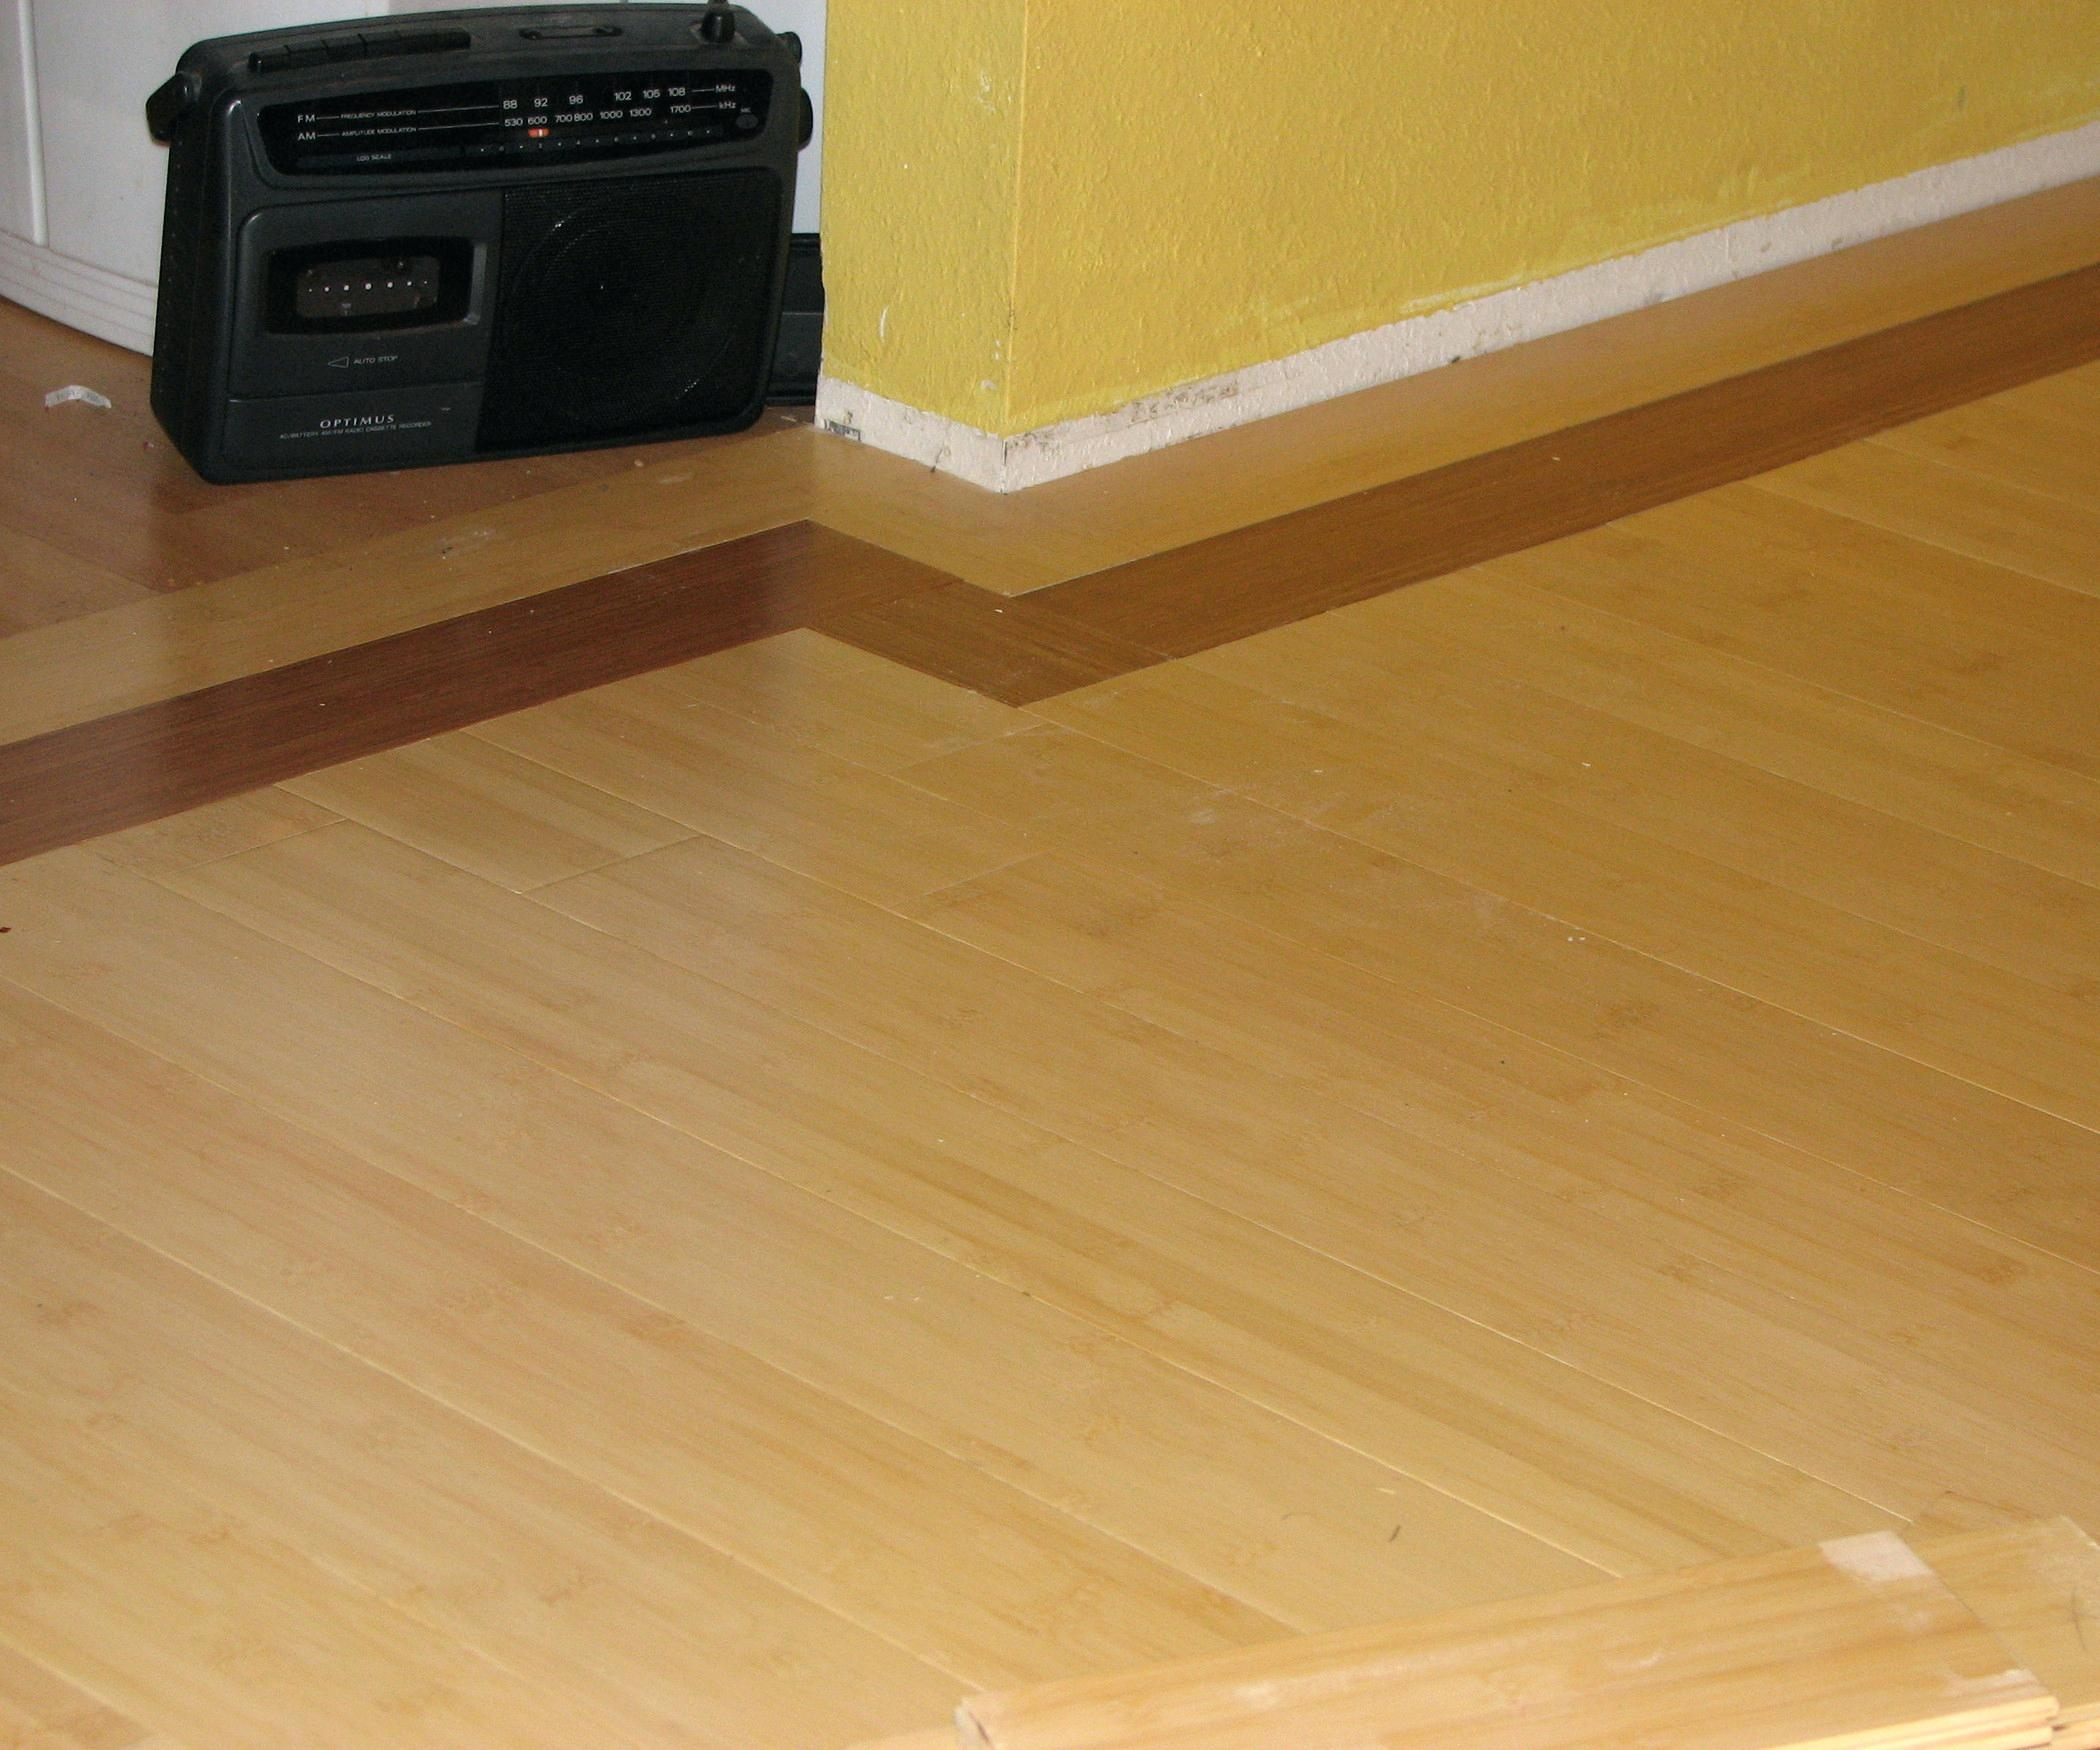 Permalink to Golden Touch Wood Floors